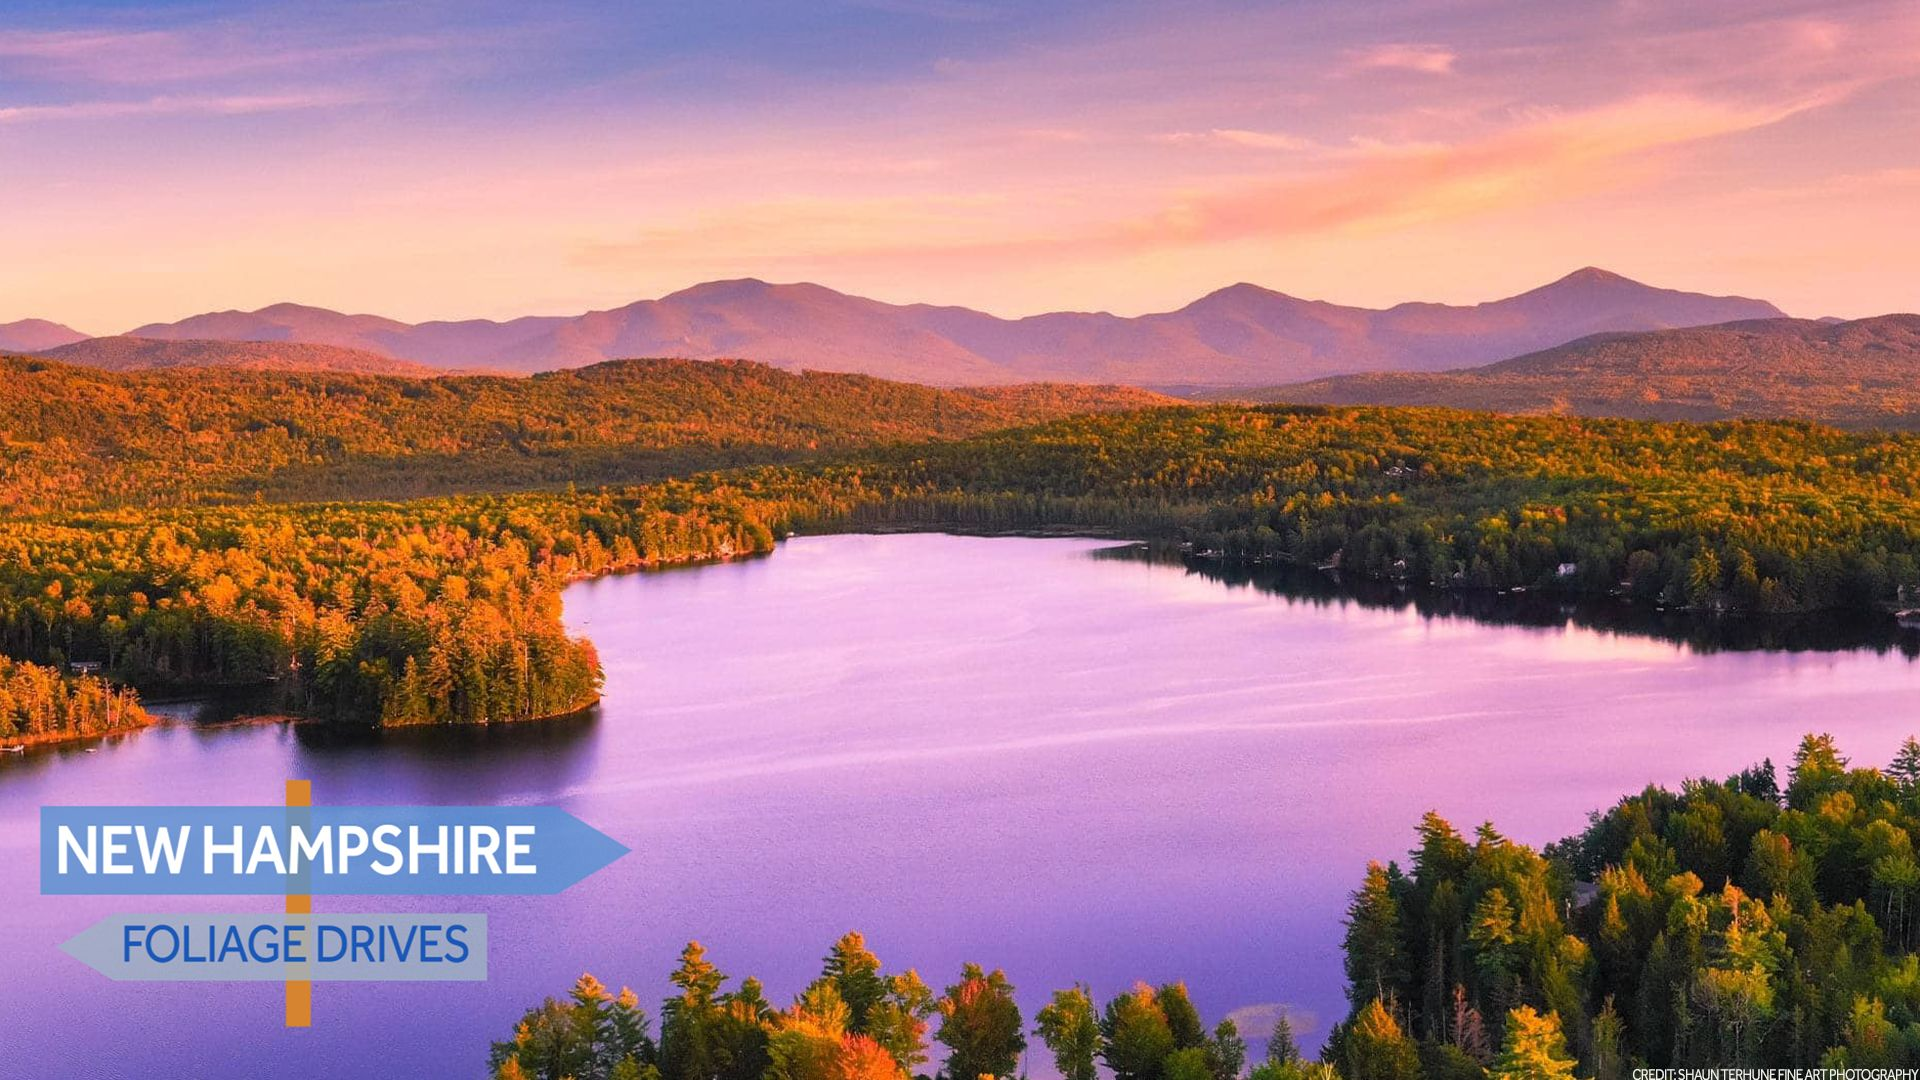 Plan your fall foliage road trip this weekend in northern New Hampshire